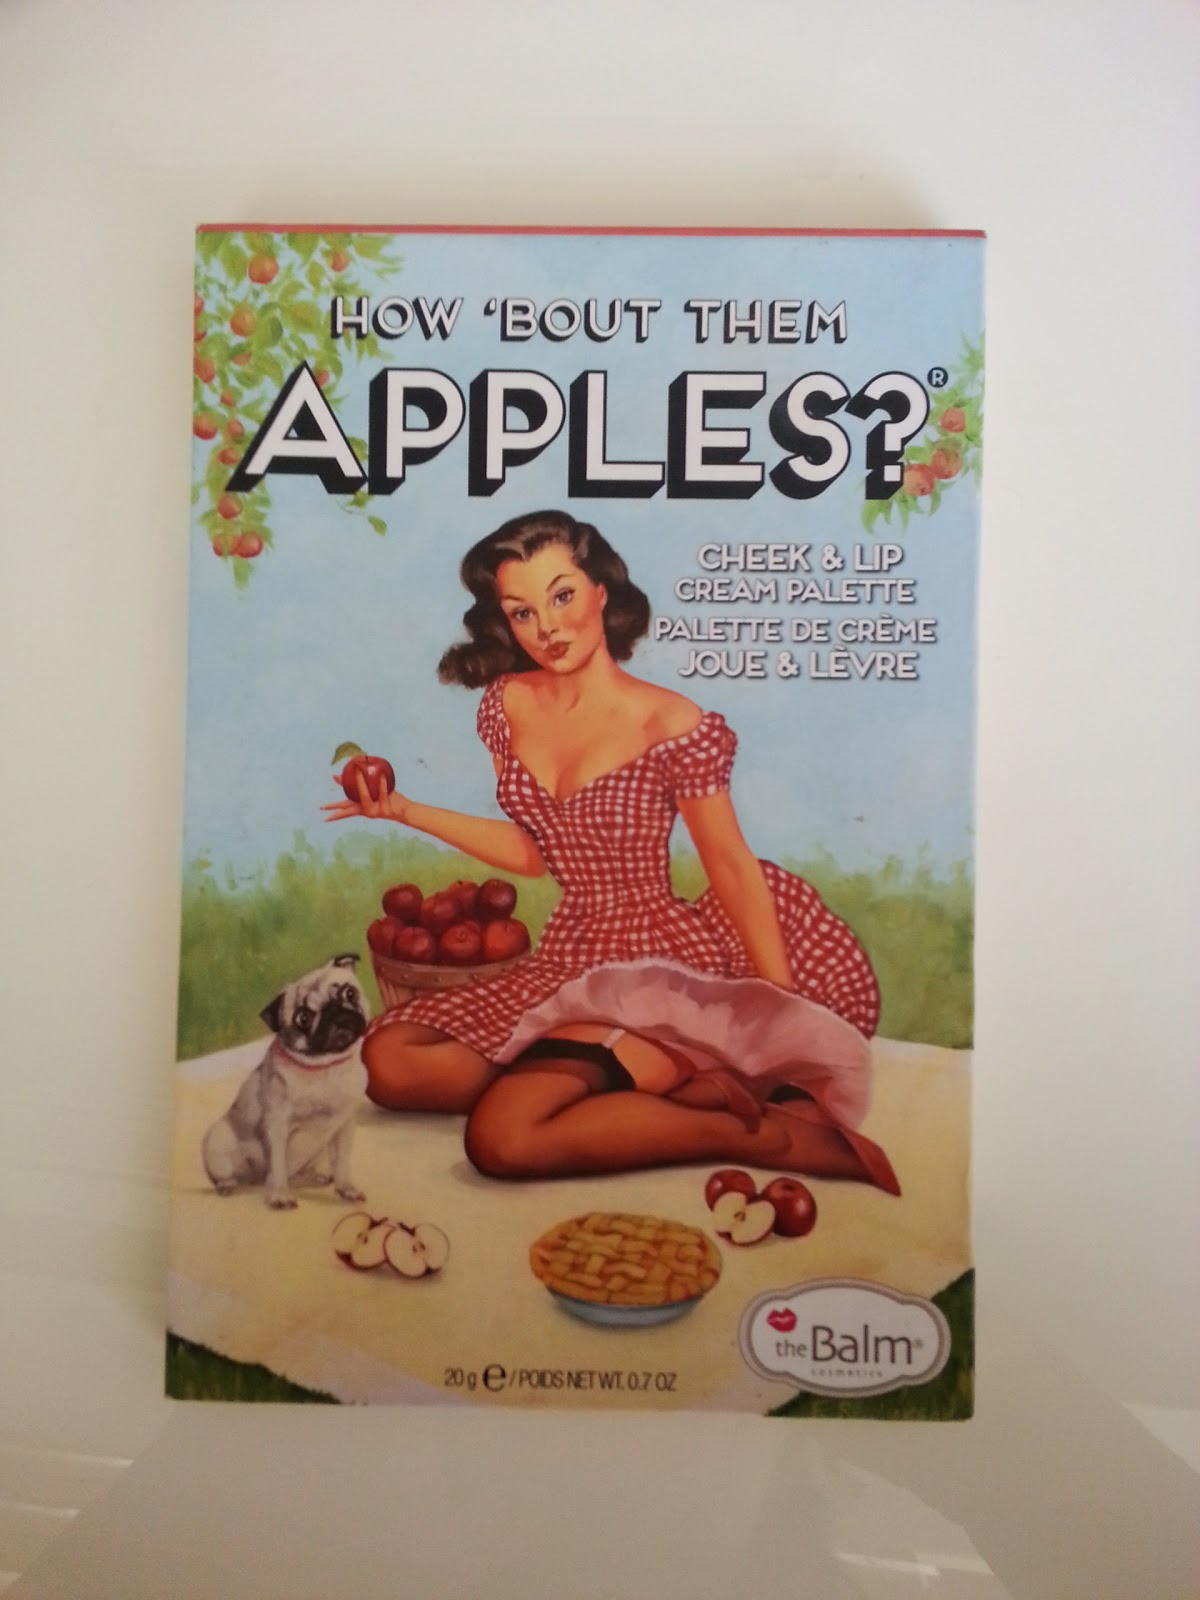 The Balm Apples Palet